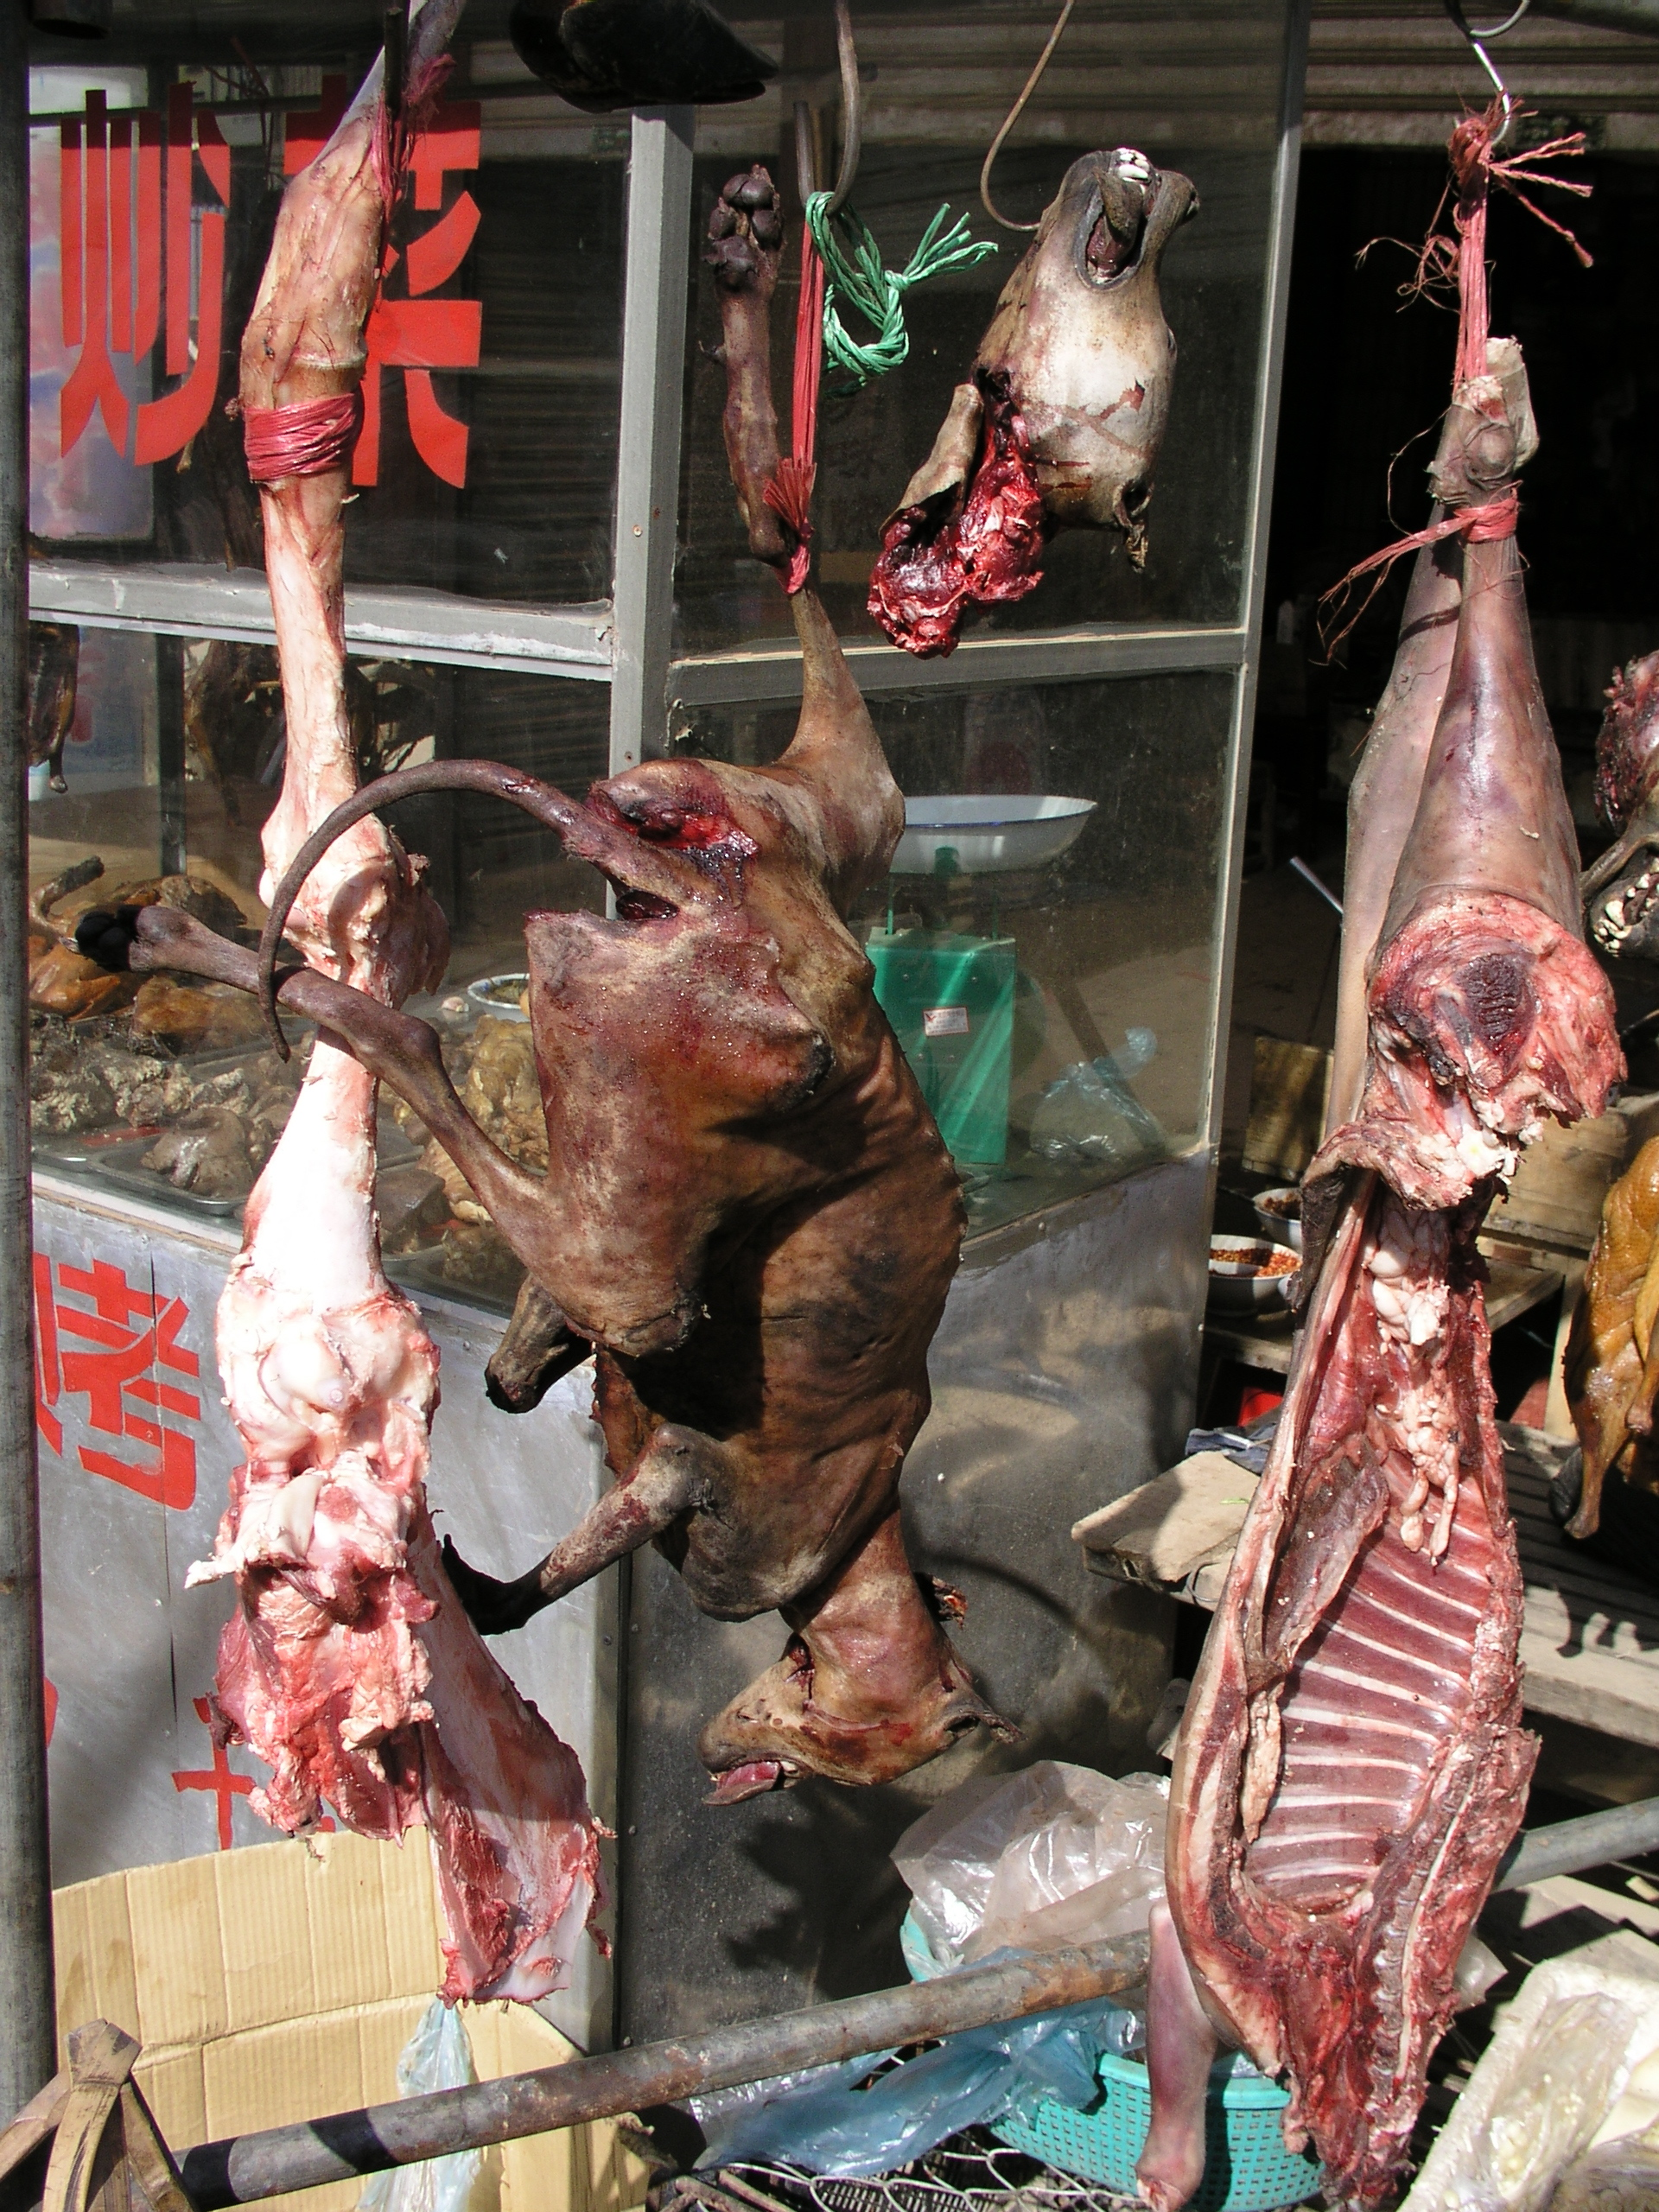 Chinese People Eating Dogs And Cats - photo#43